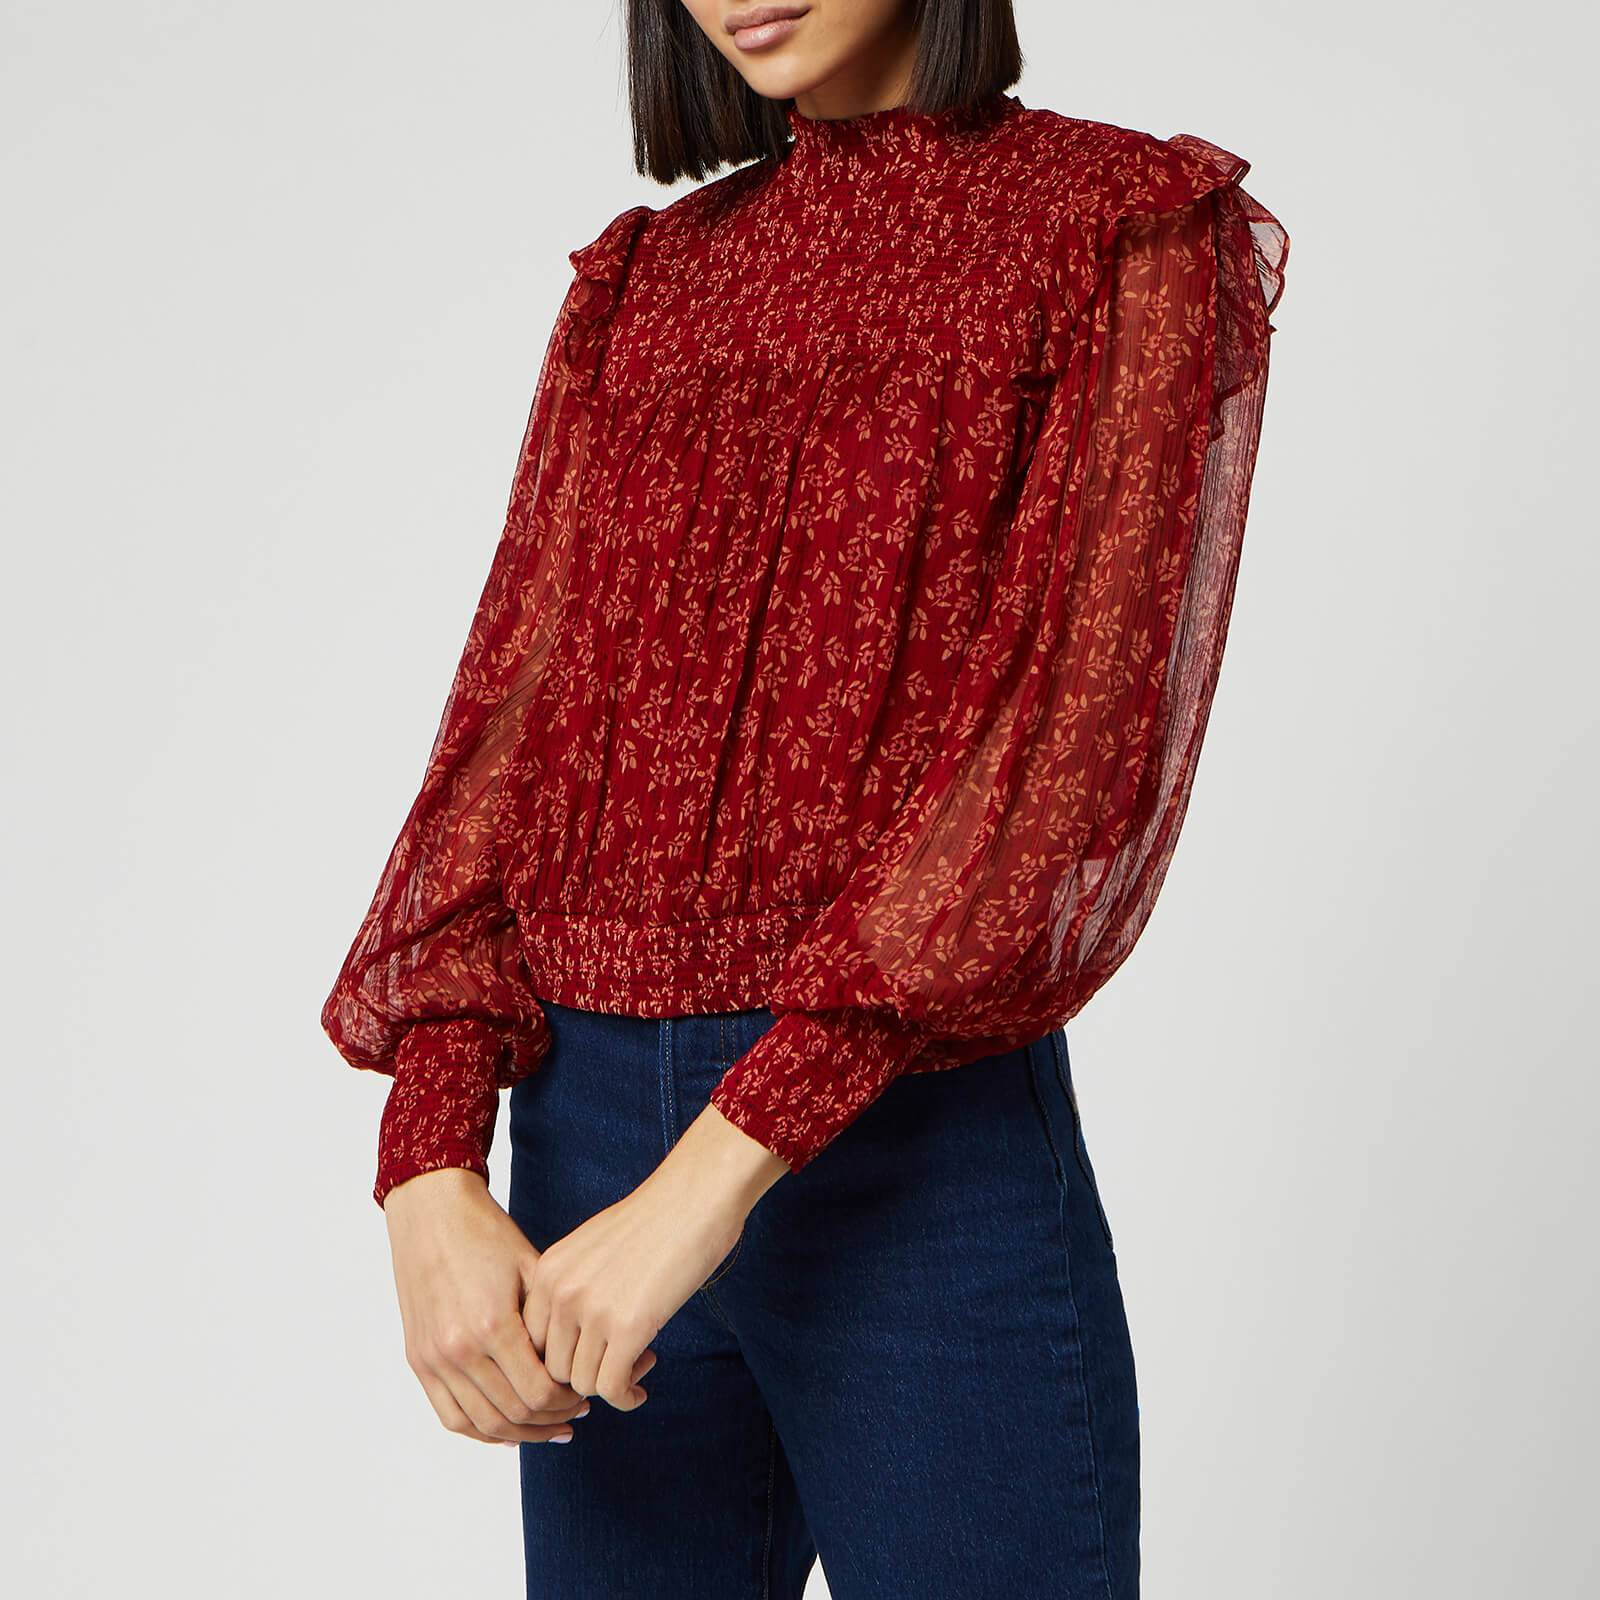 Free People Women's Roma Blouse - Red - XS